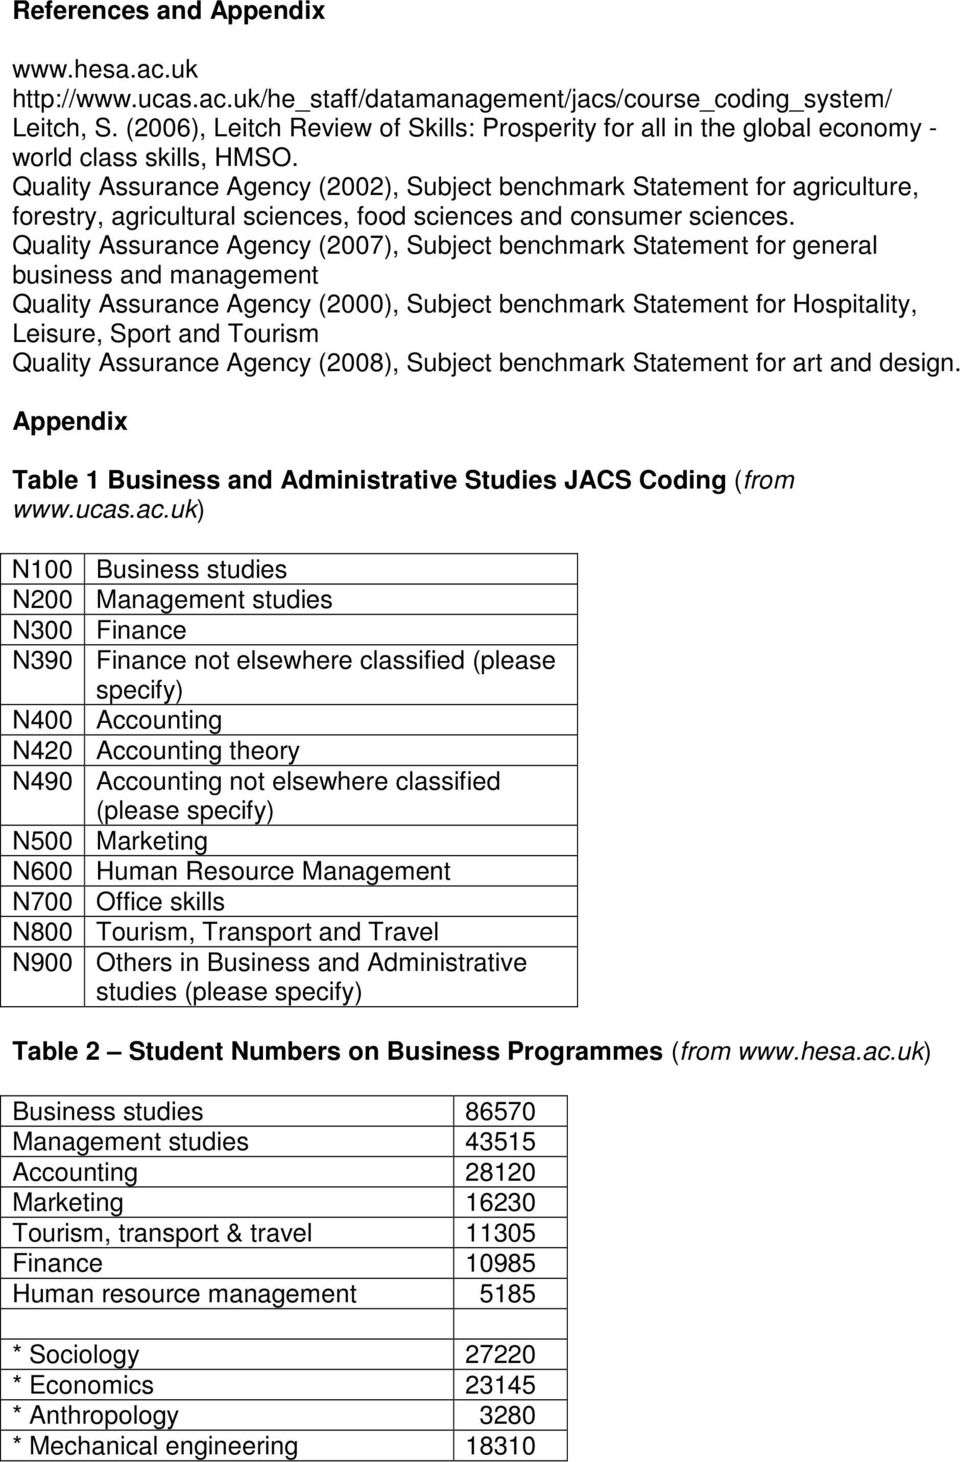 Quality Assurance Agency (2002), Subject benchmark Statement for agriculture, forestry, agricultural sciences, food sciences and consumer sciences.